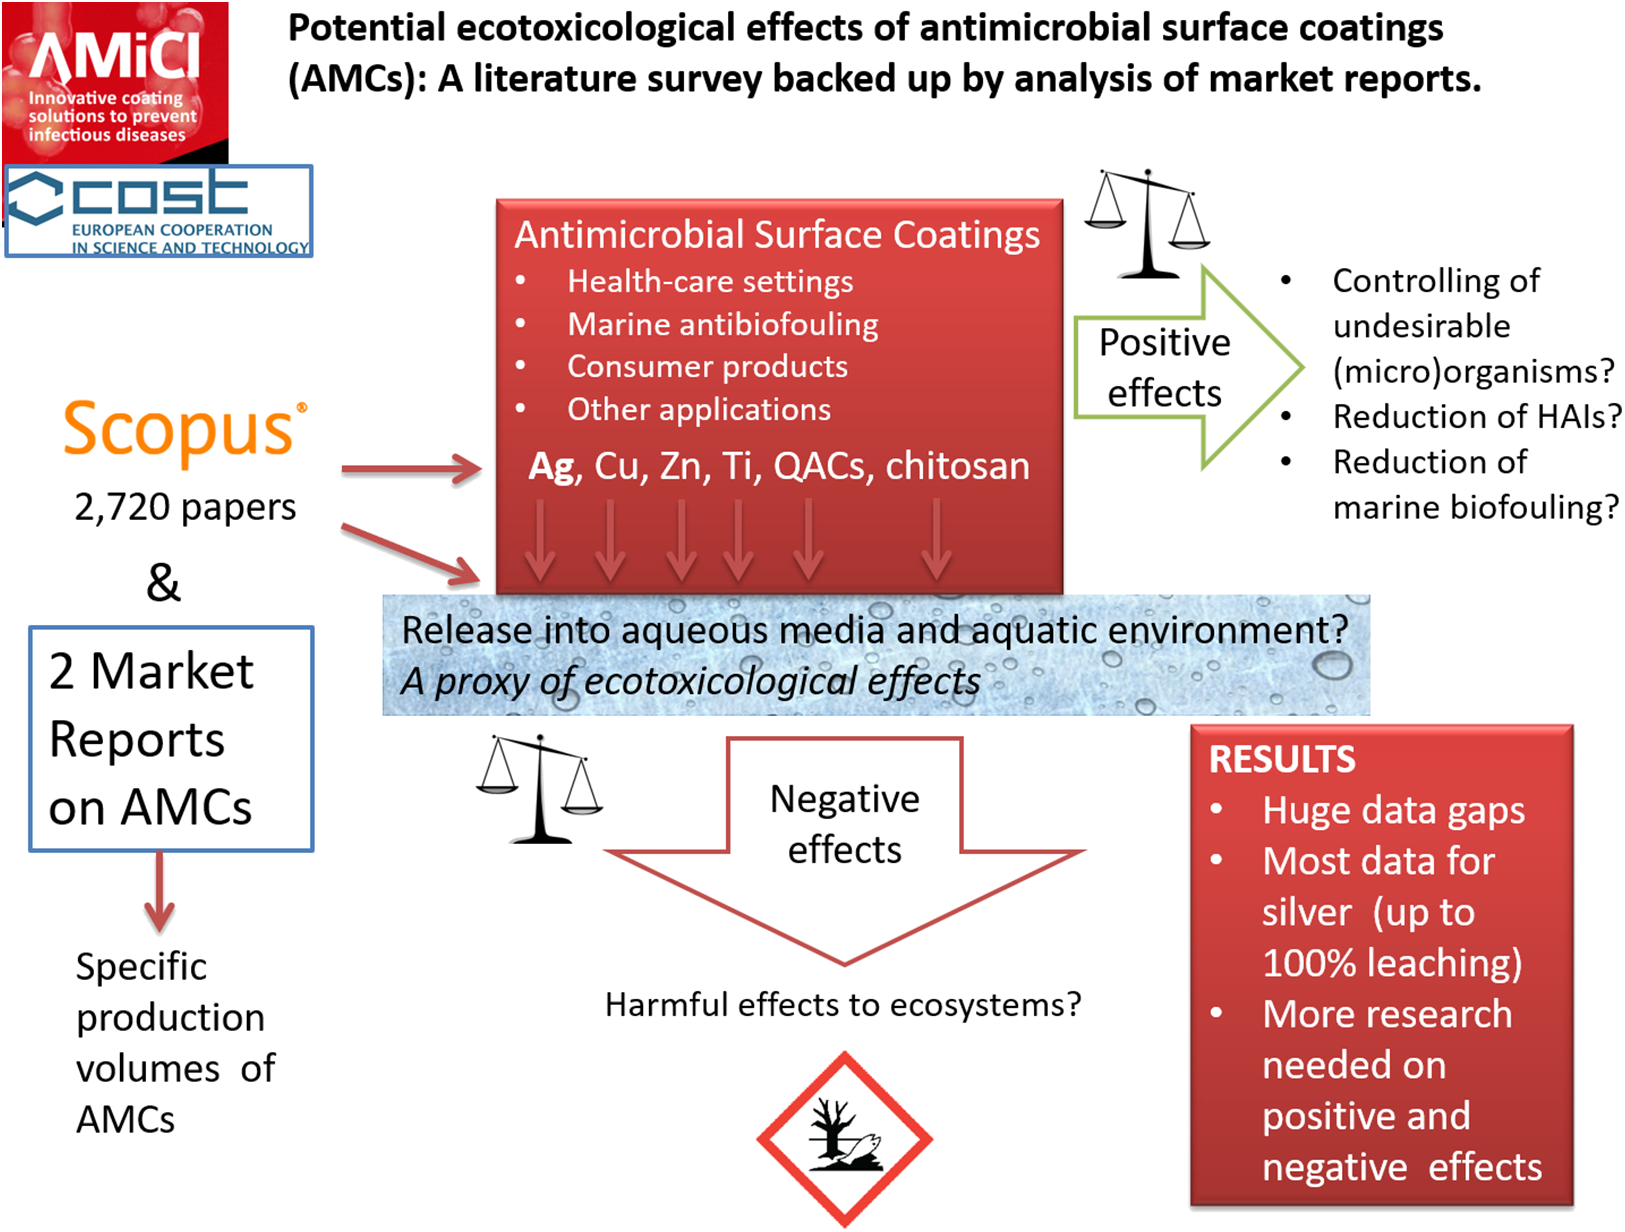 Potential ecotoxicological effects of antimicrobial surface